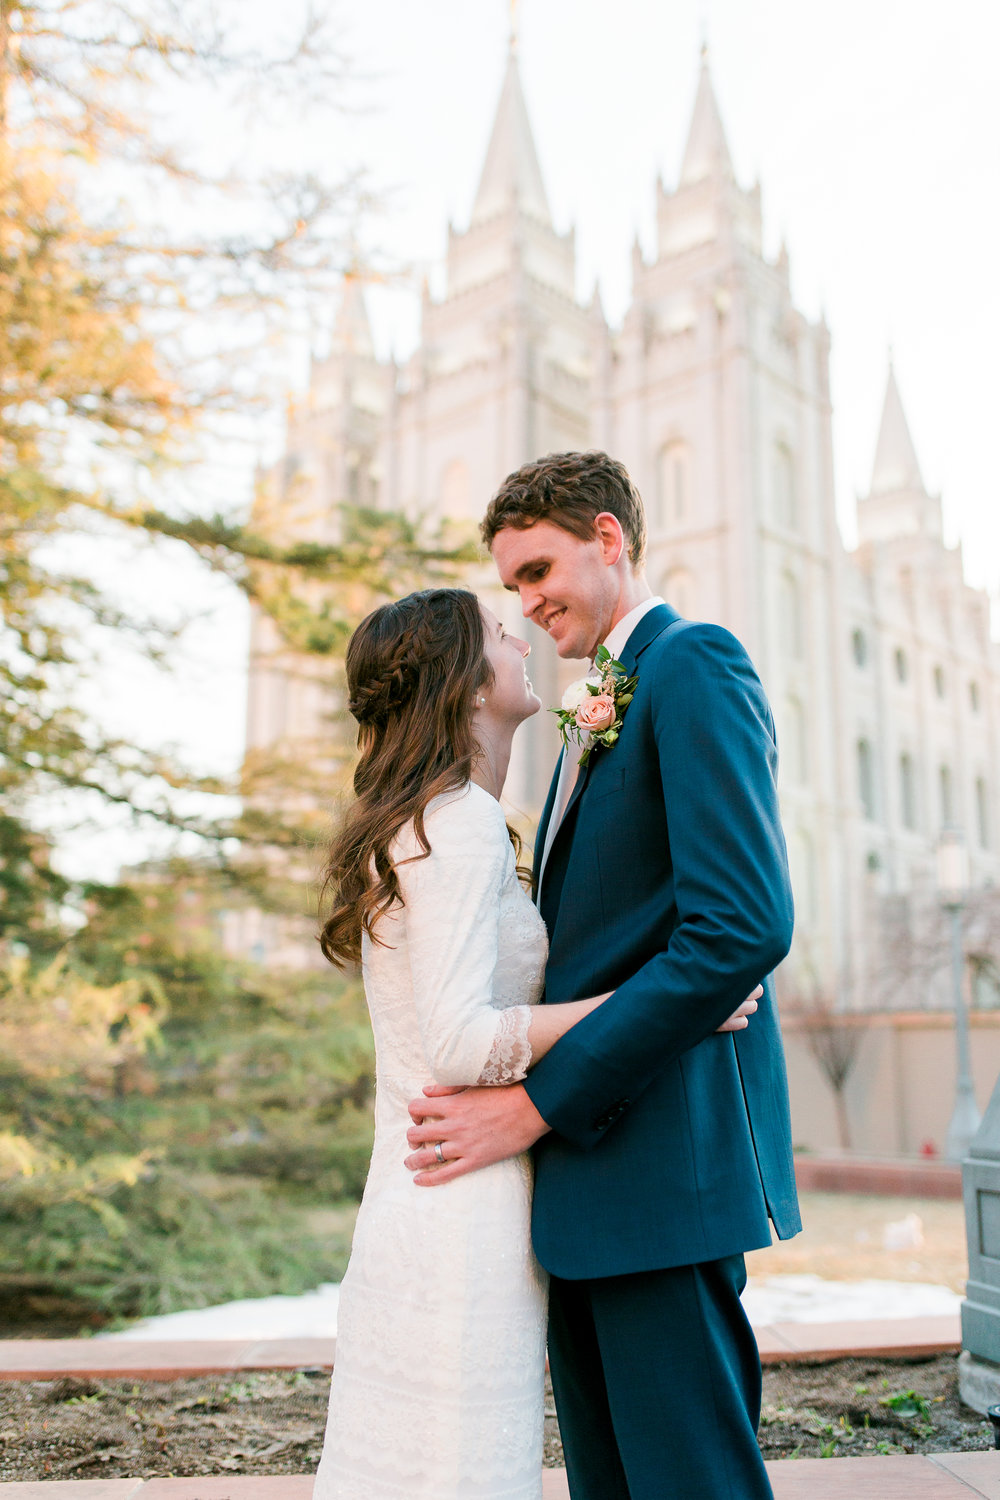 Eliza + Cody Bridals - Utah Wedding Photographer-70.jpg